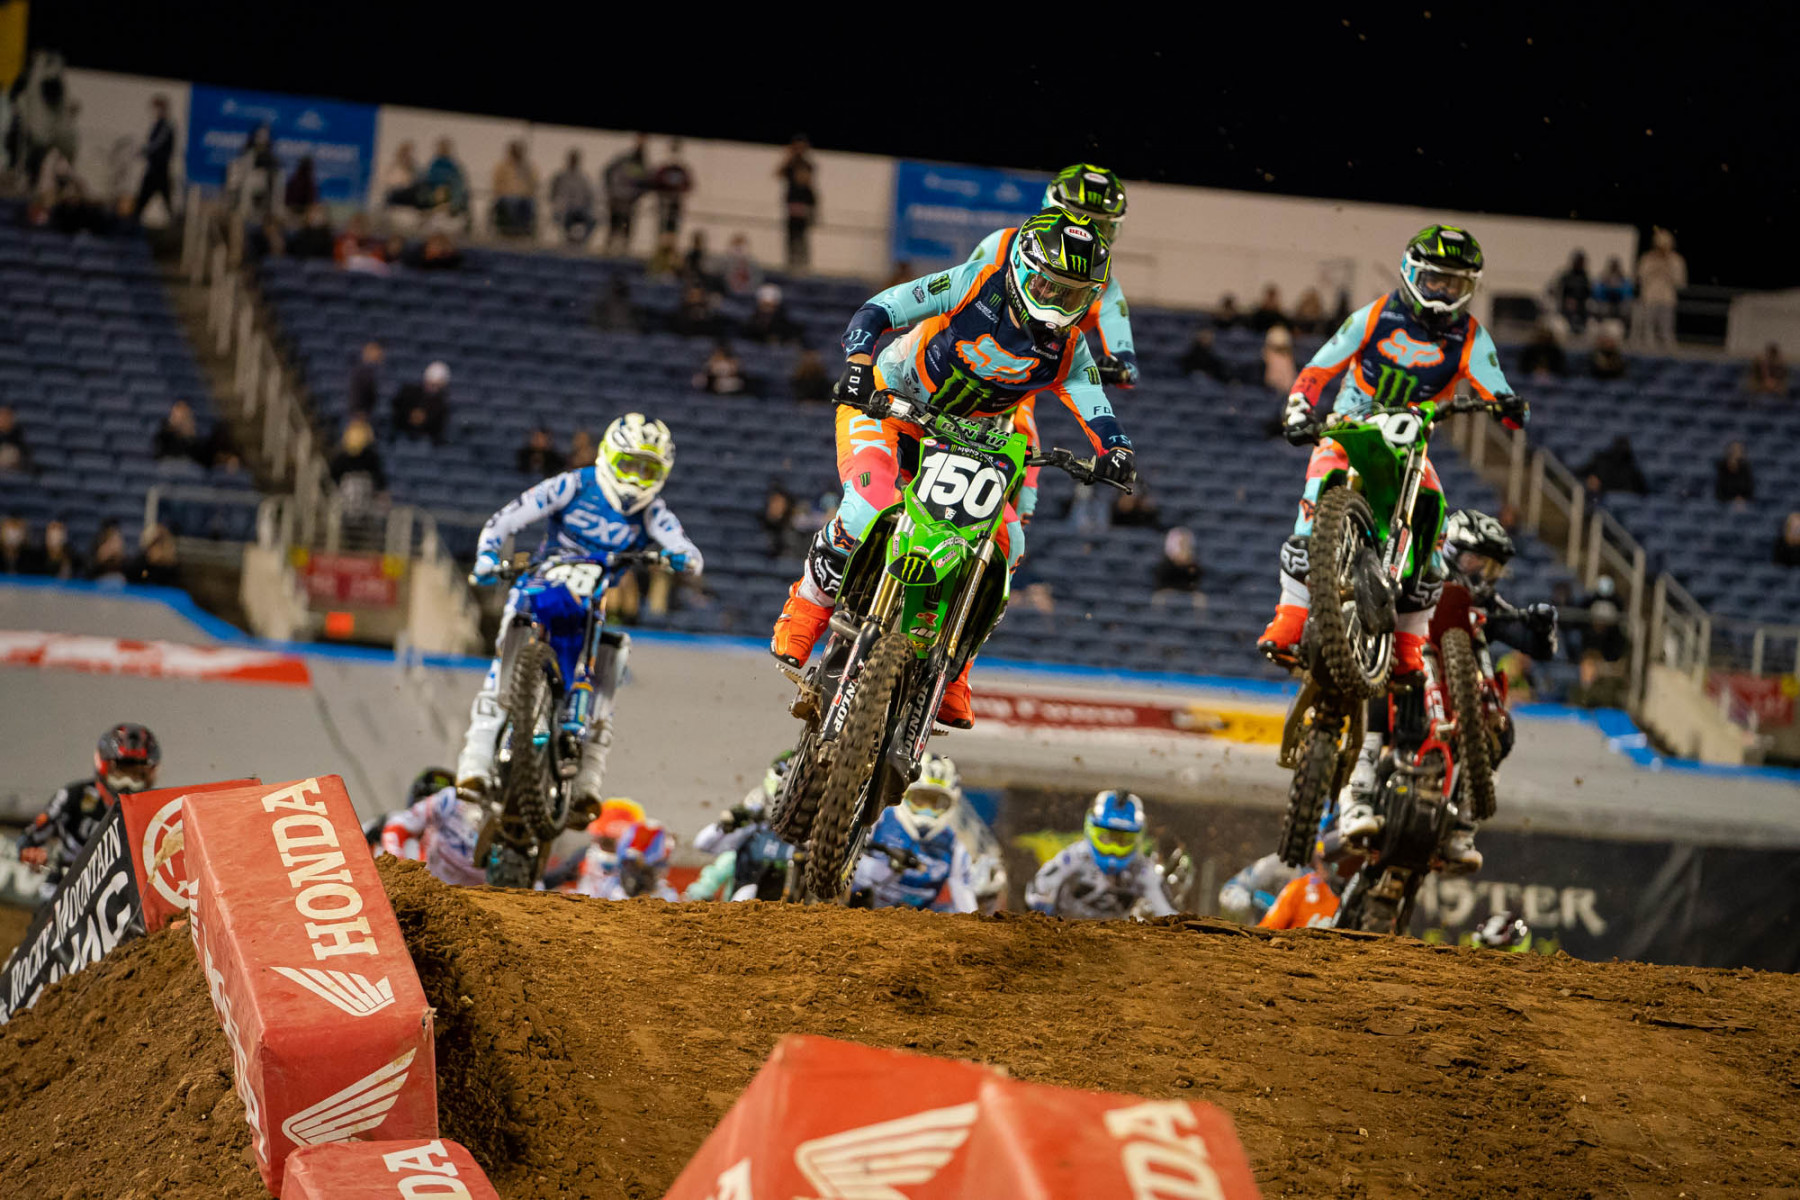 2021-ORLANDO-TWO-SUPERCROSS_KICKSTART_1524